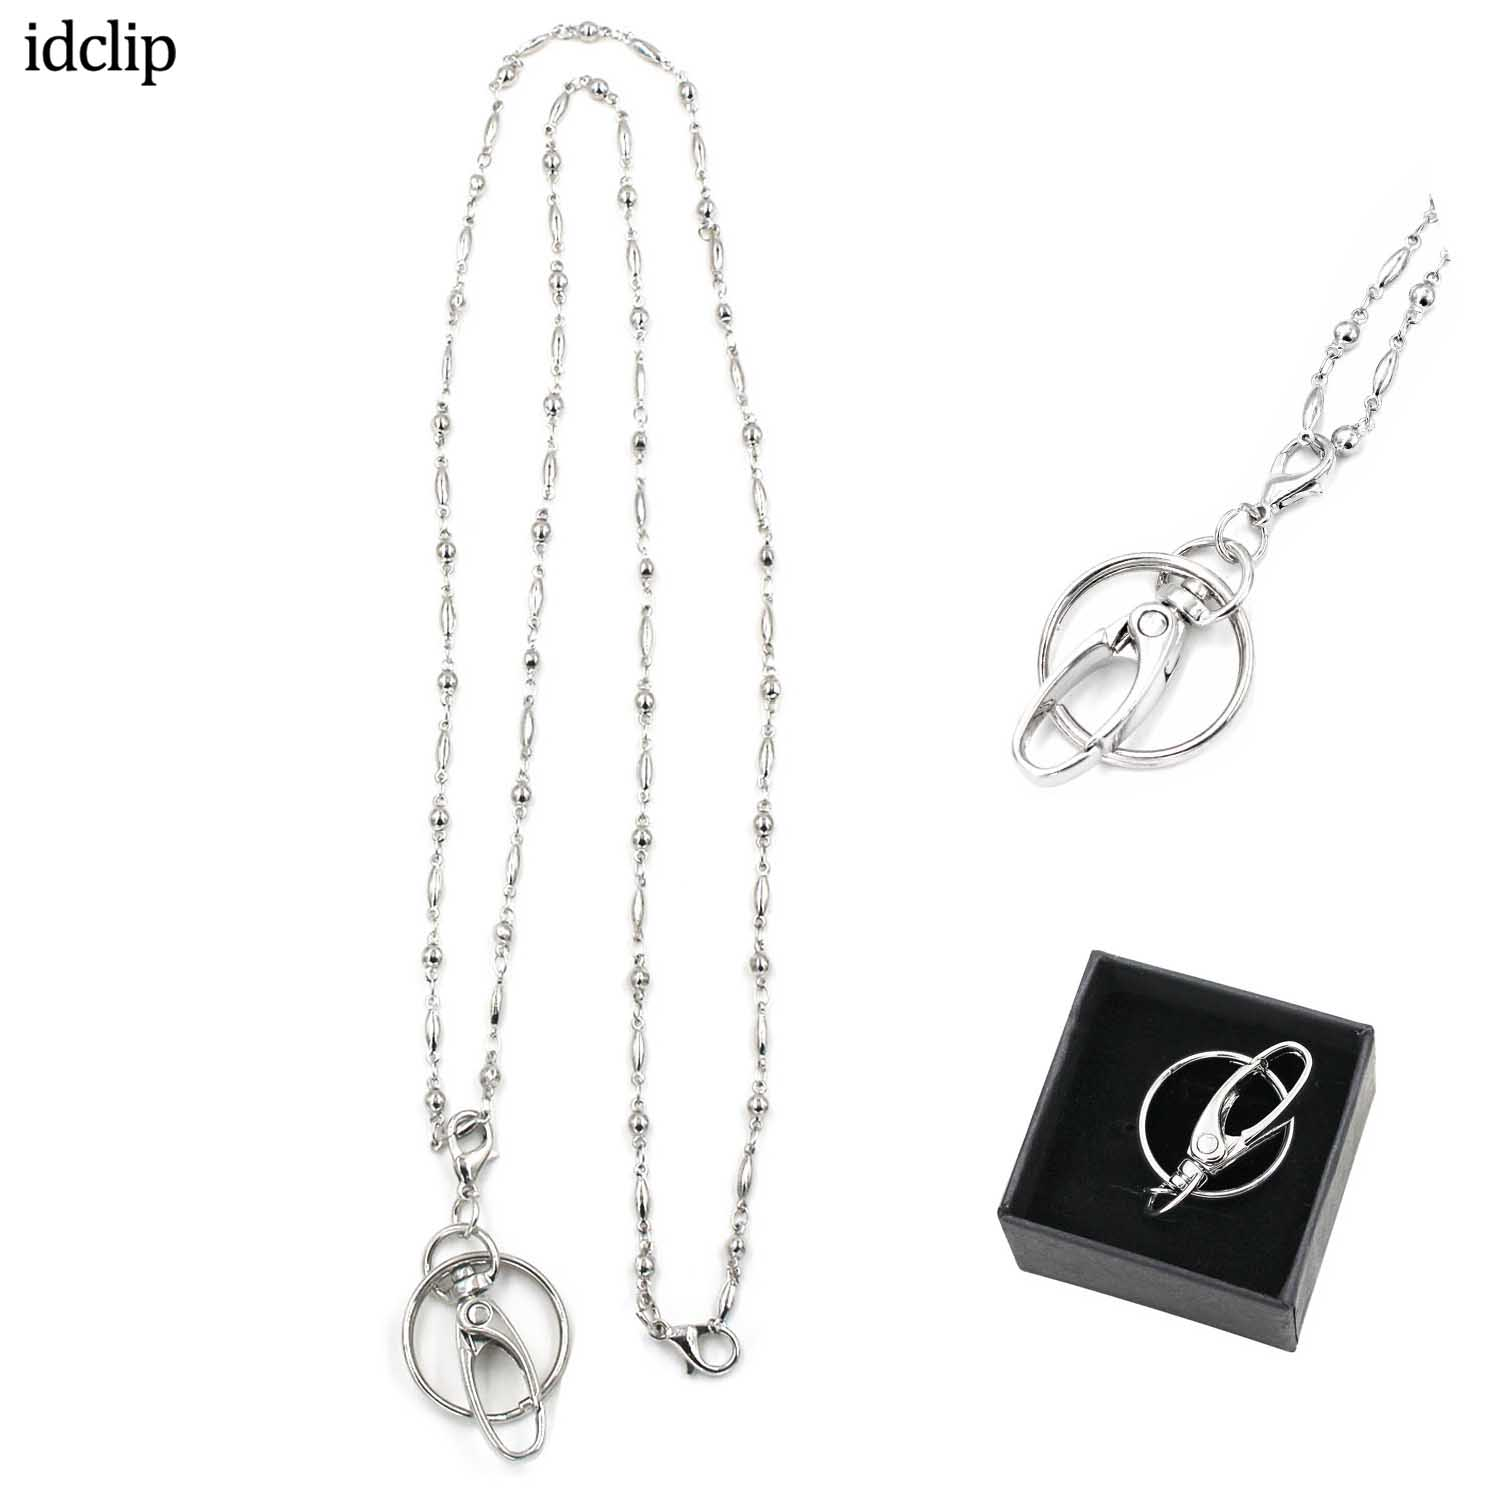 Idclip Badge Holder Lanyard ID Holder For Women Fashion Cruise Lanyard Stainless Steel Necklace Water Resistant Id Card Clip